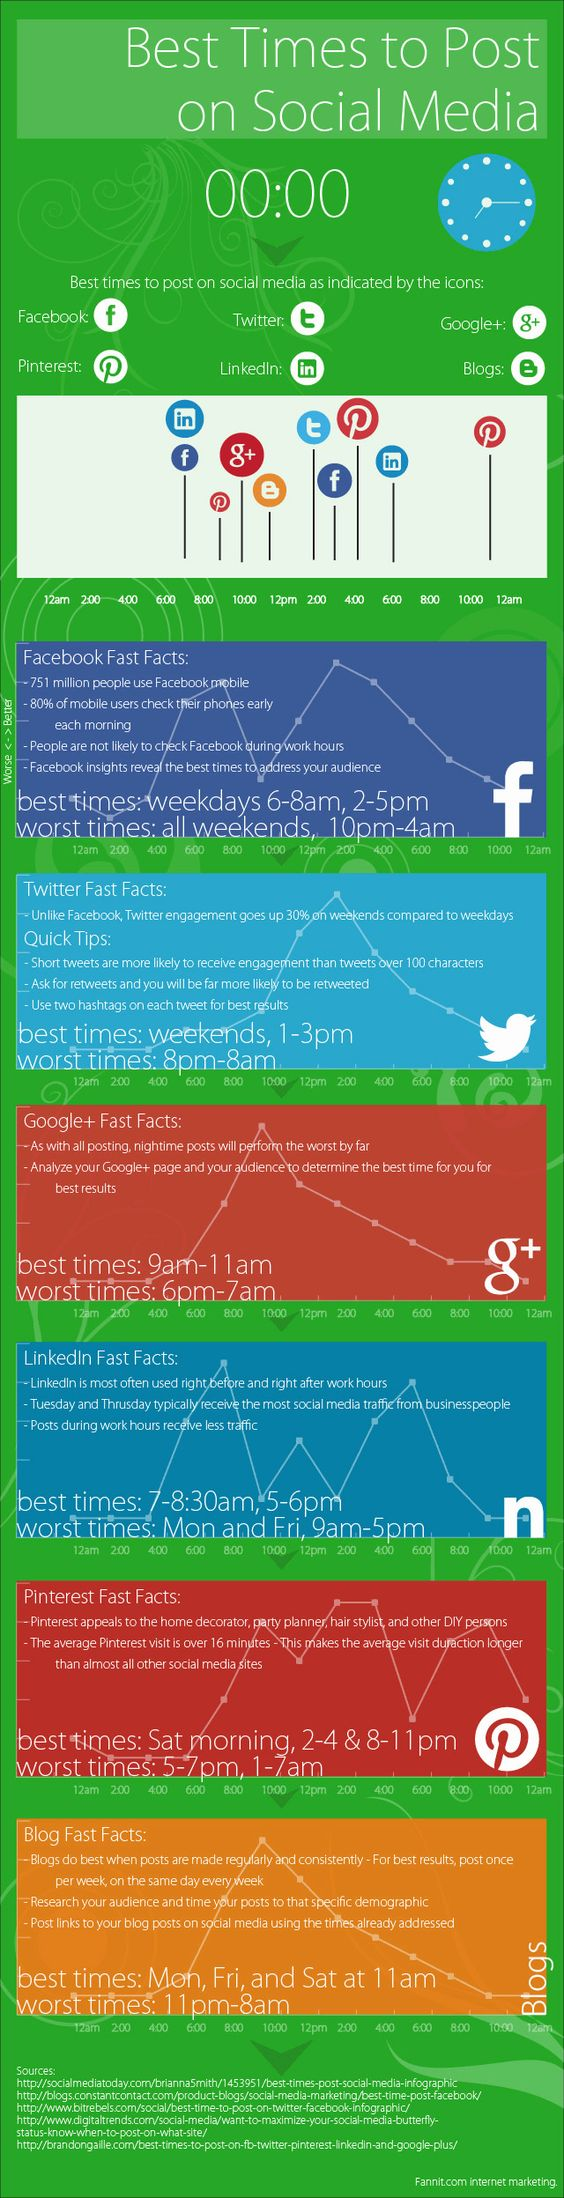 A Guide to the Best Times to Post on Social Media (Infographic) #marketing #socialmedia